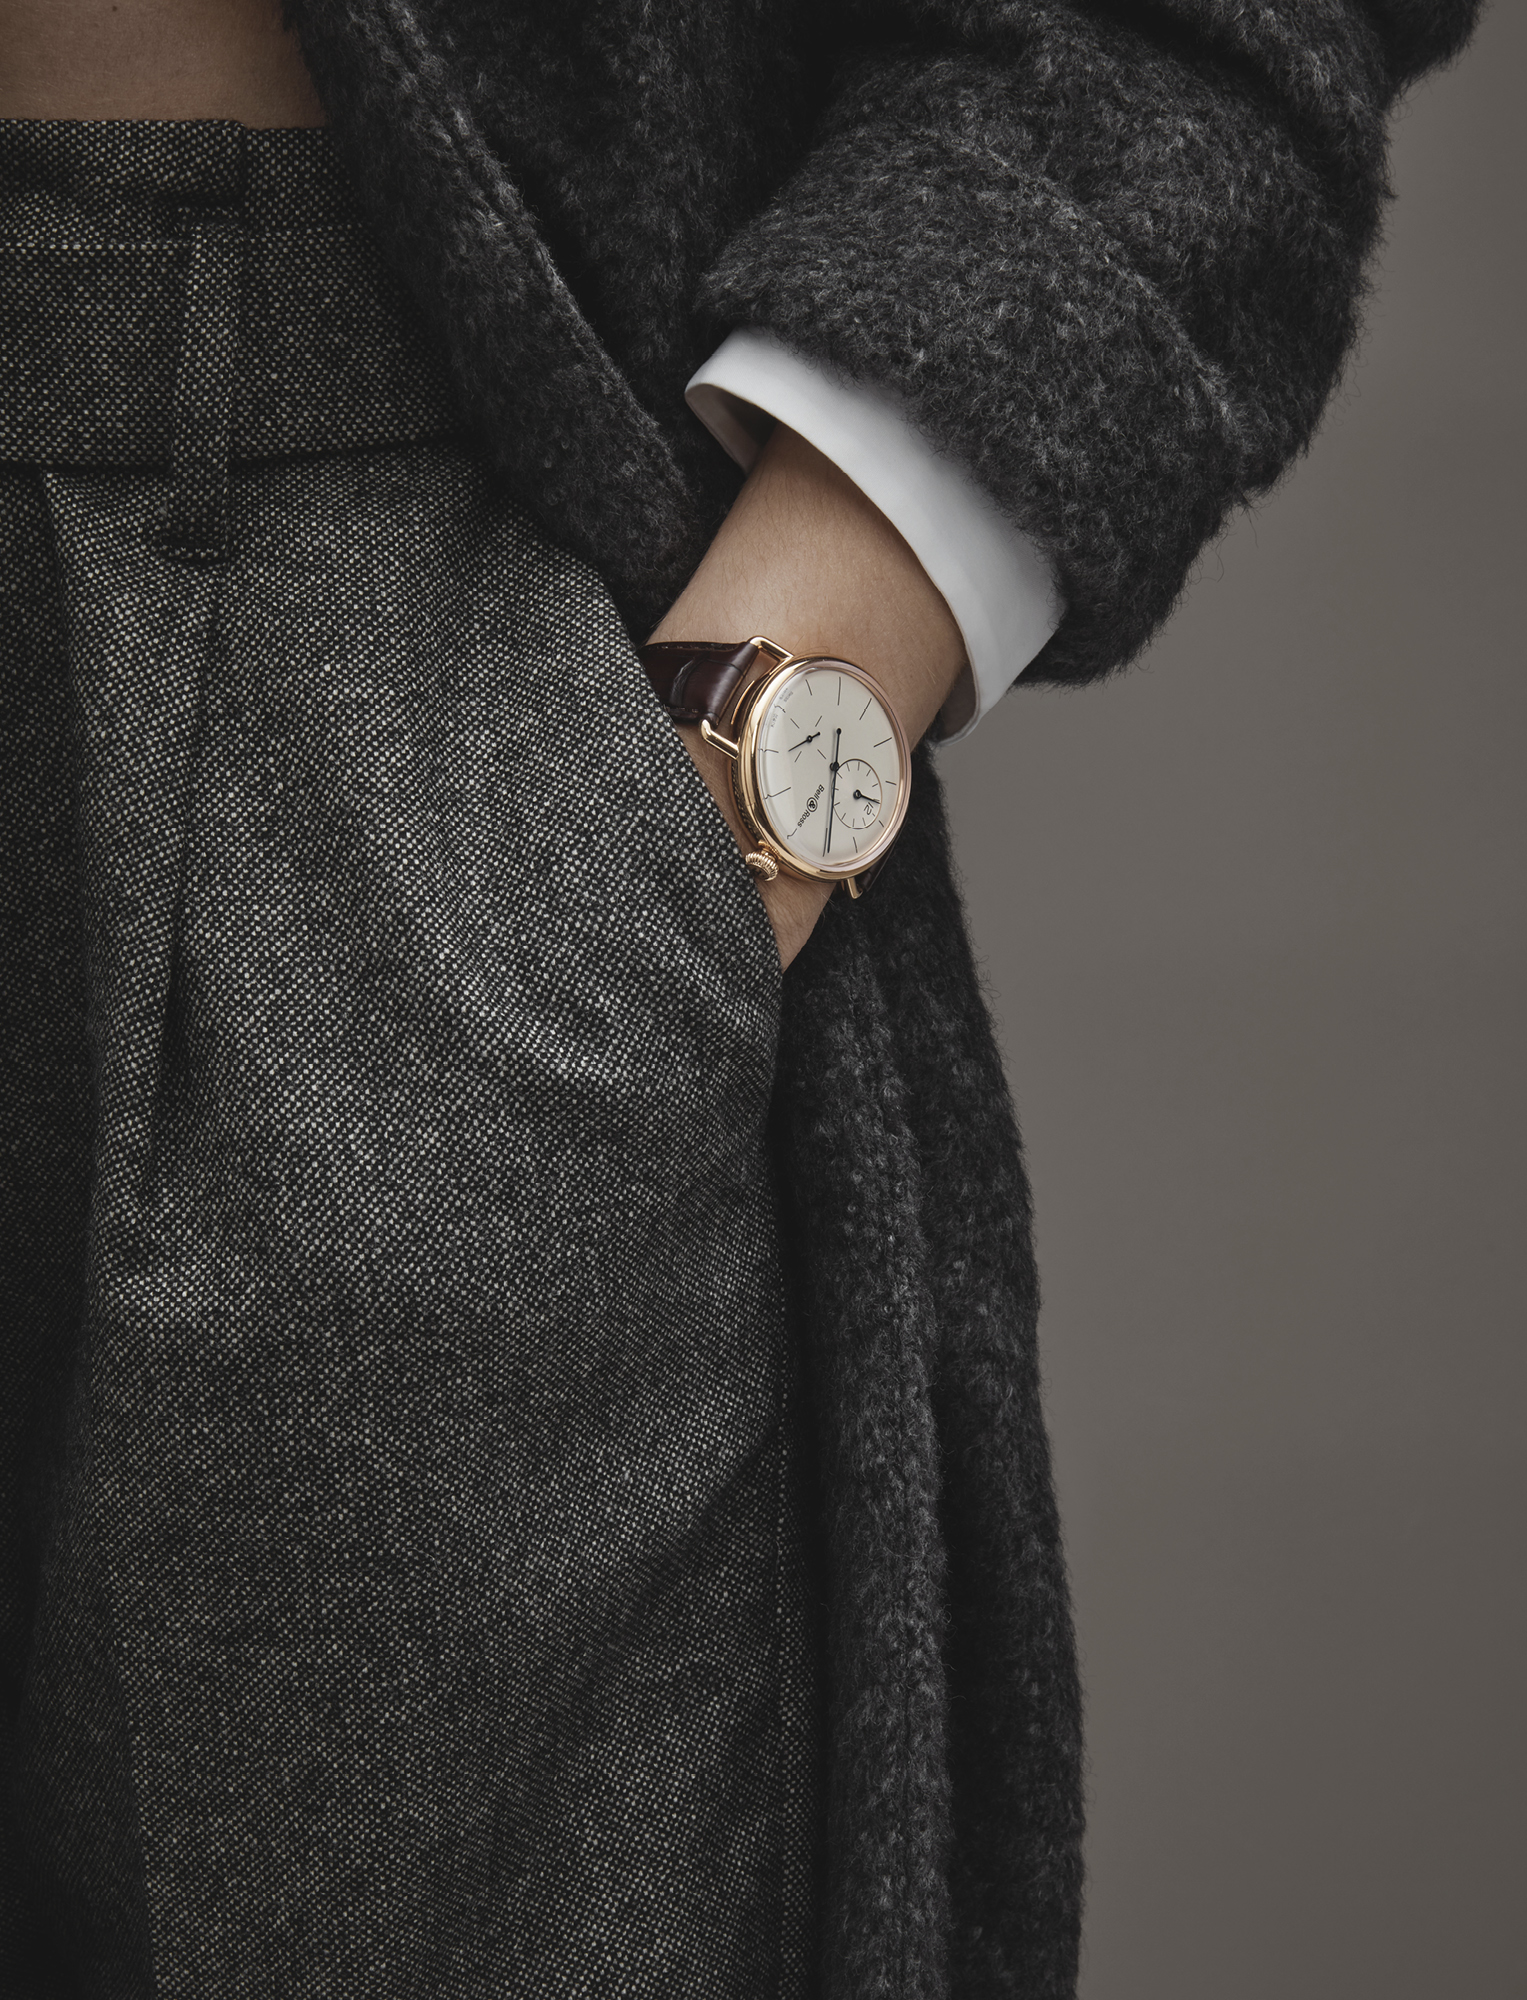 Grey wool trousers, £880, white shirt, £730, grey coat, £3,970, all BRUNELLO CUCINELLI; WW1 Regulateur rose gold watch, £14,000, BELL & ROSS